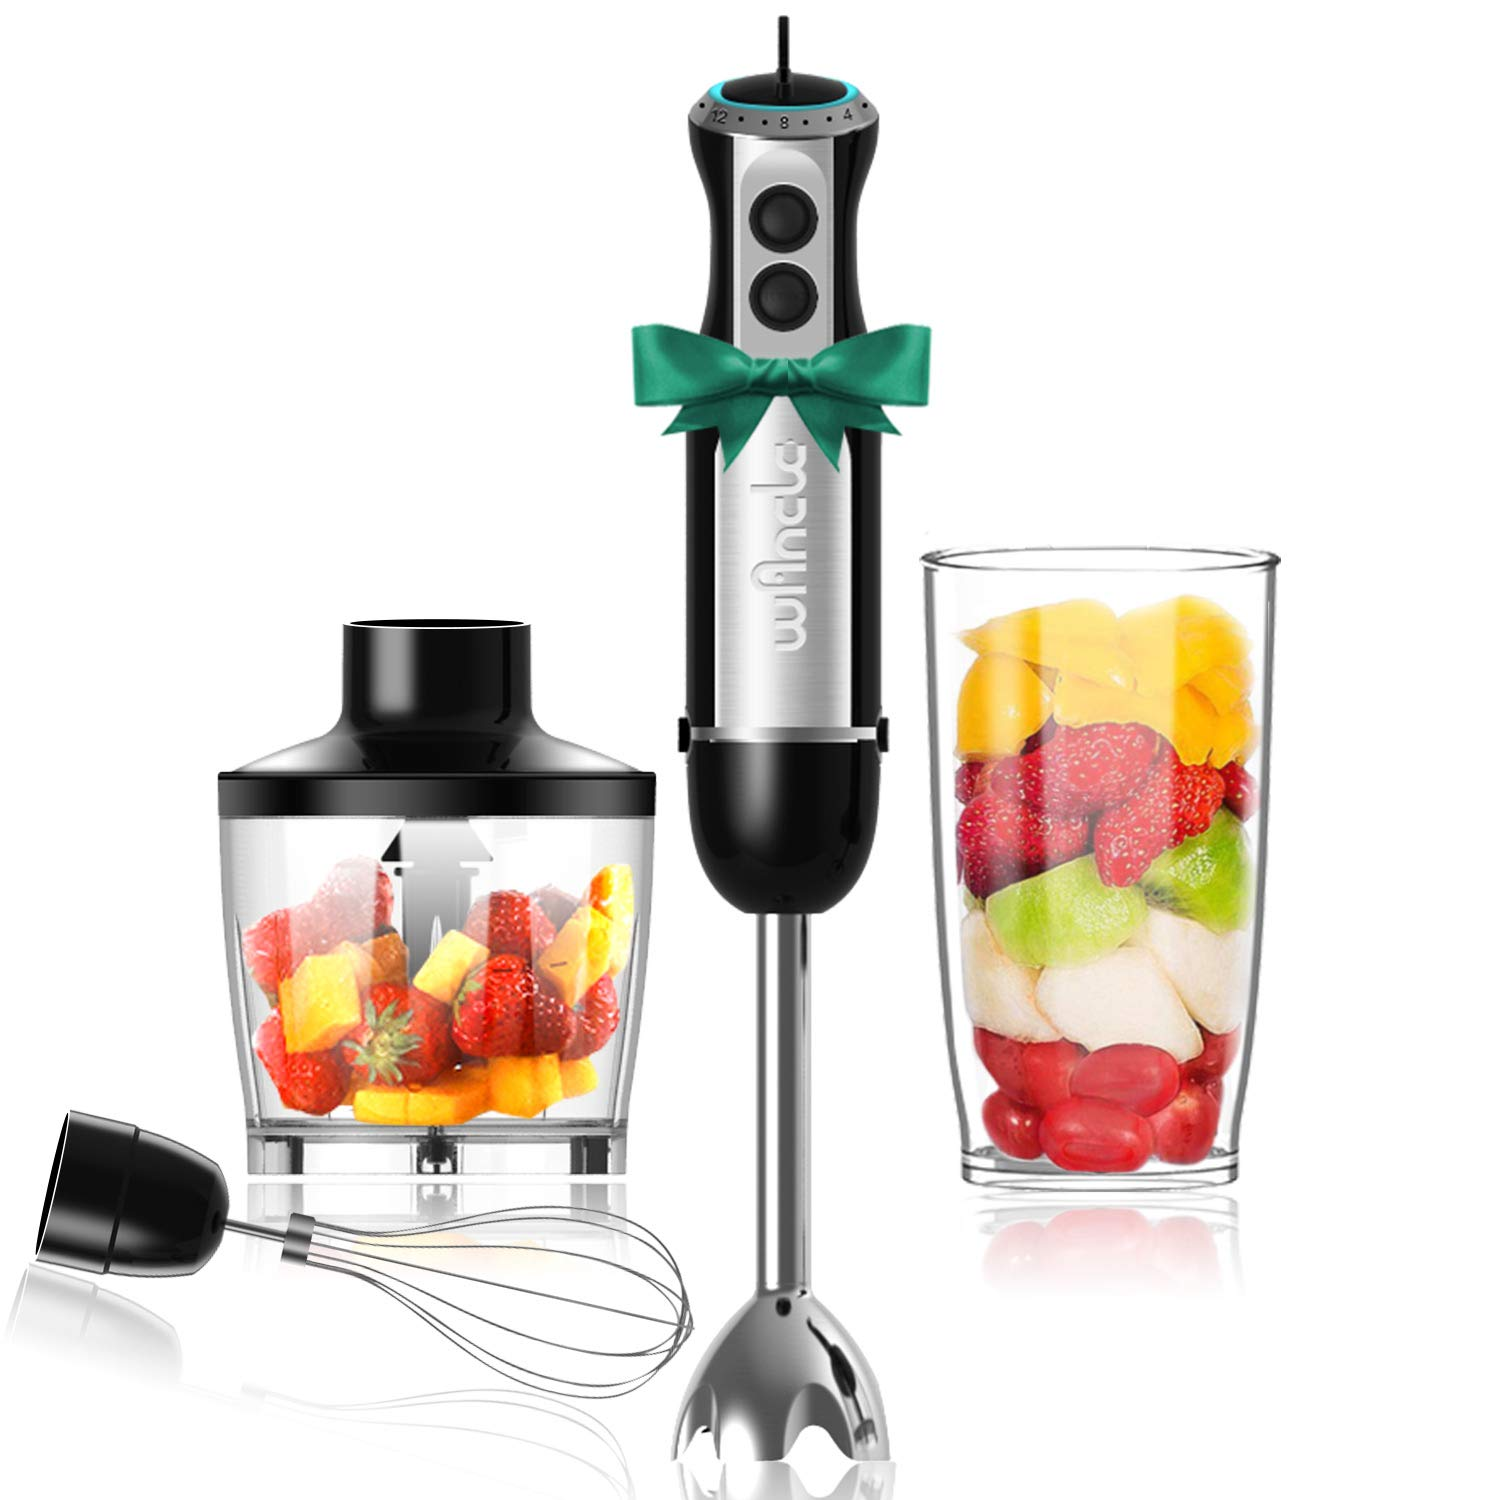 Wancle Immersion Hand Blender Set Stick Blender 16-Speed 4-in-1 With 500ml Food Grinder, 600ml Container, Egg Whisk, Puree Infant Food, Smoothies, Sauces and Soups , 304 Stainless Steel , BPA-Free (Black) by WancIe